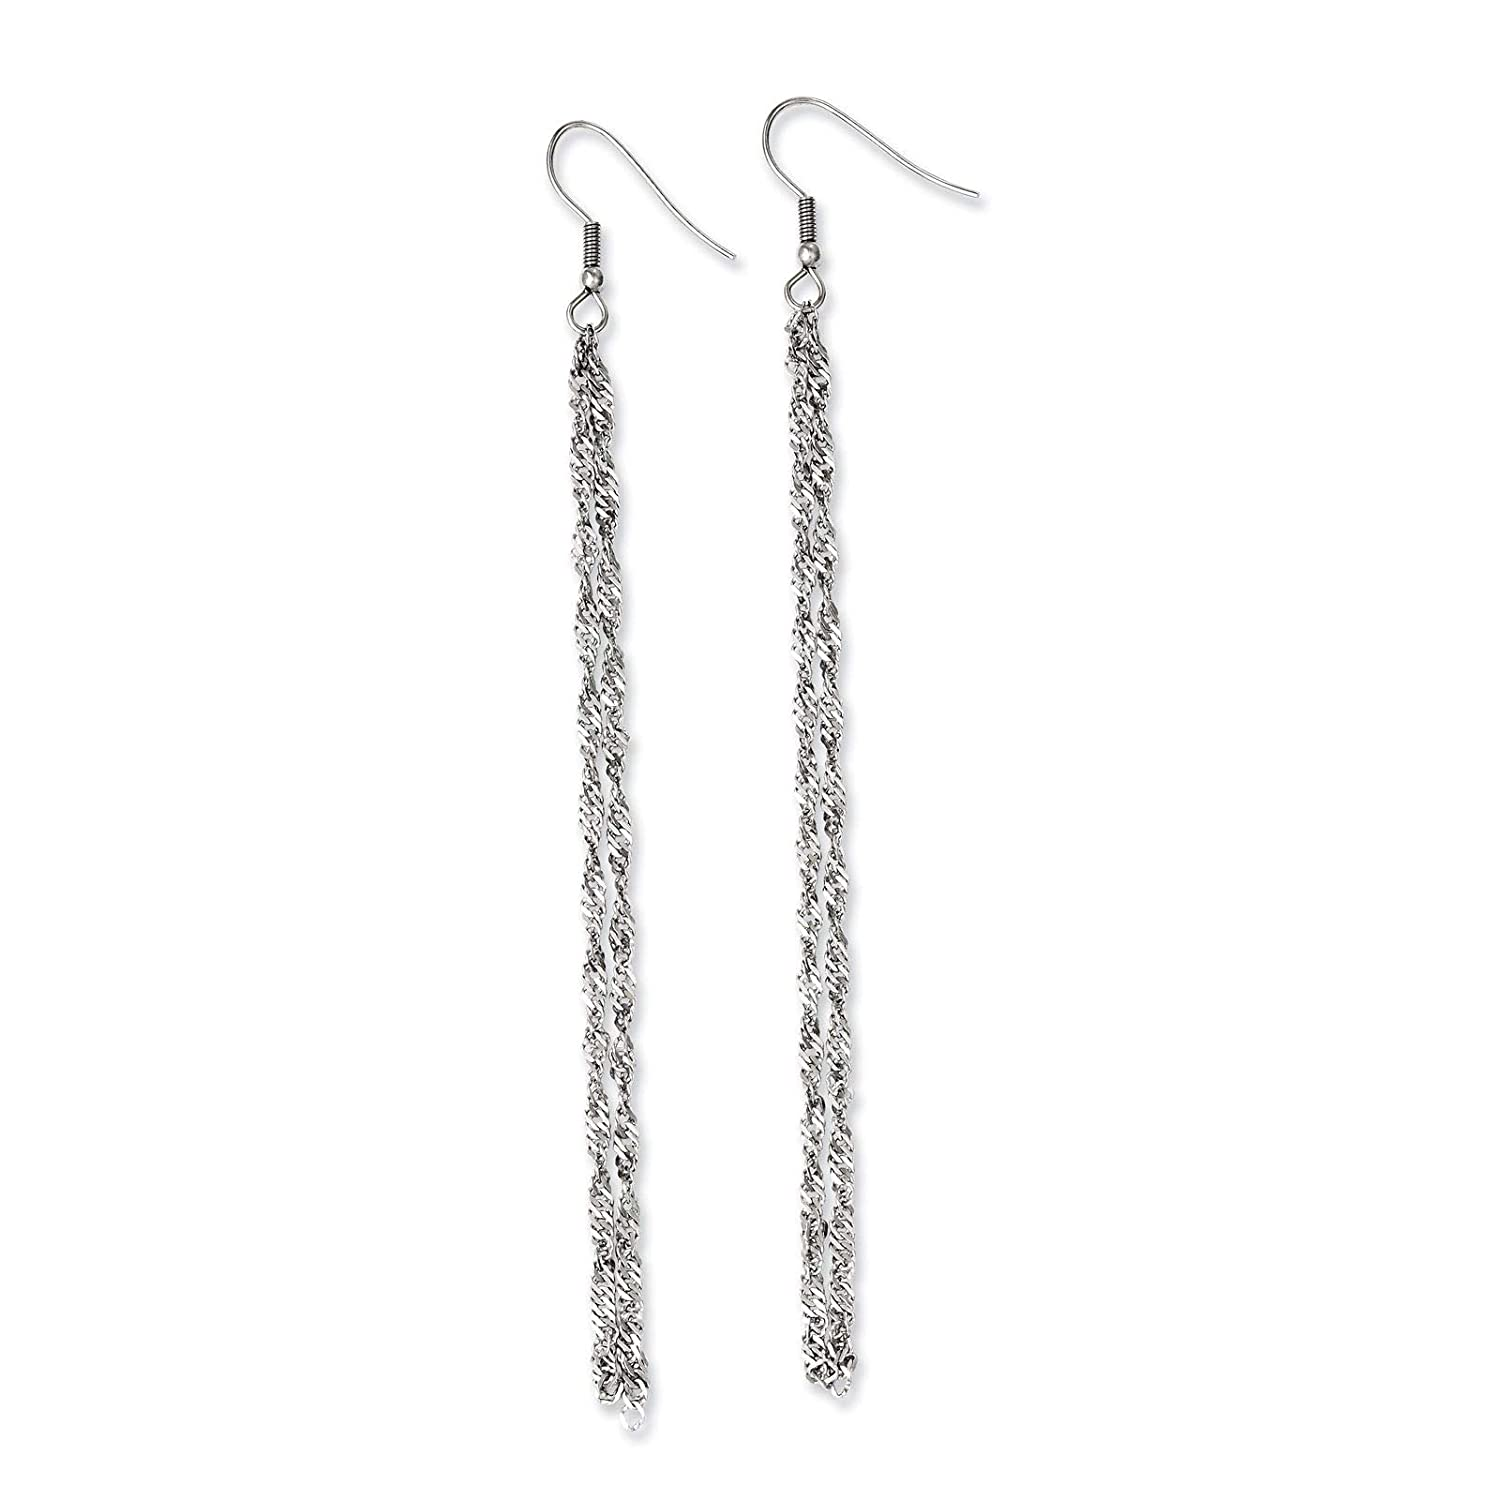 Stainless Steel Polished Multi-strand Twisted Chain Dangle Earrings